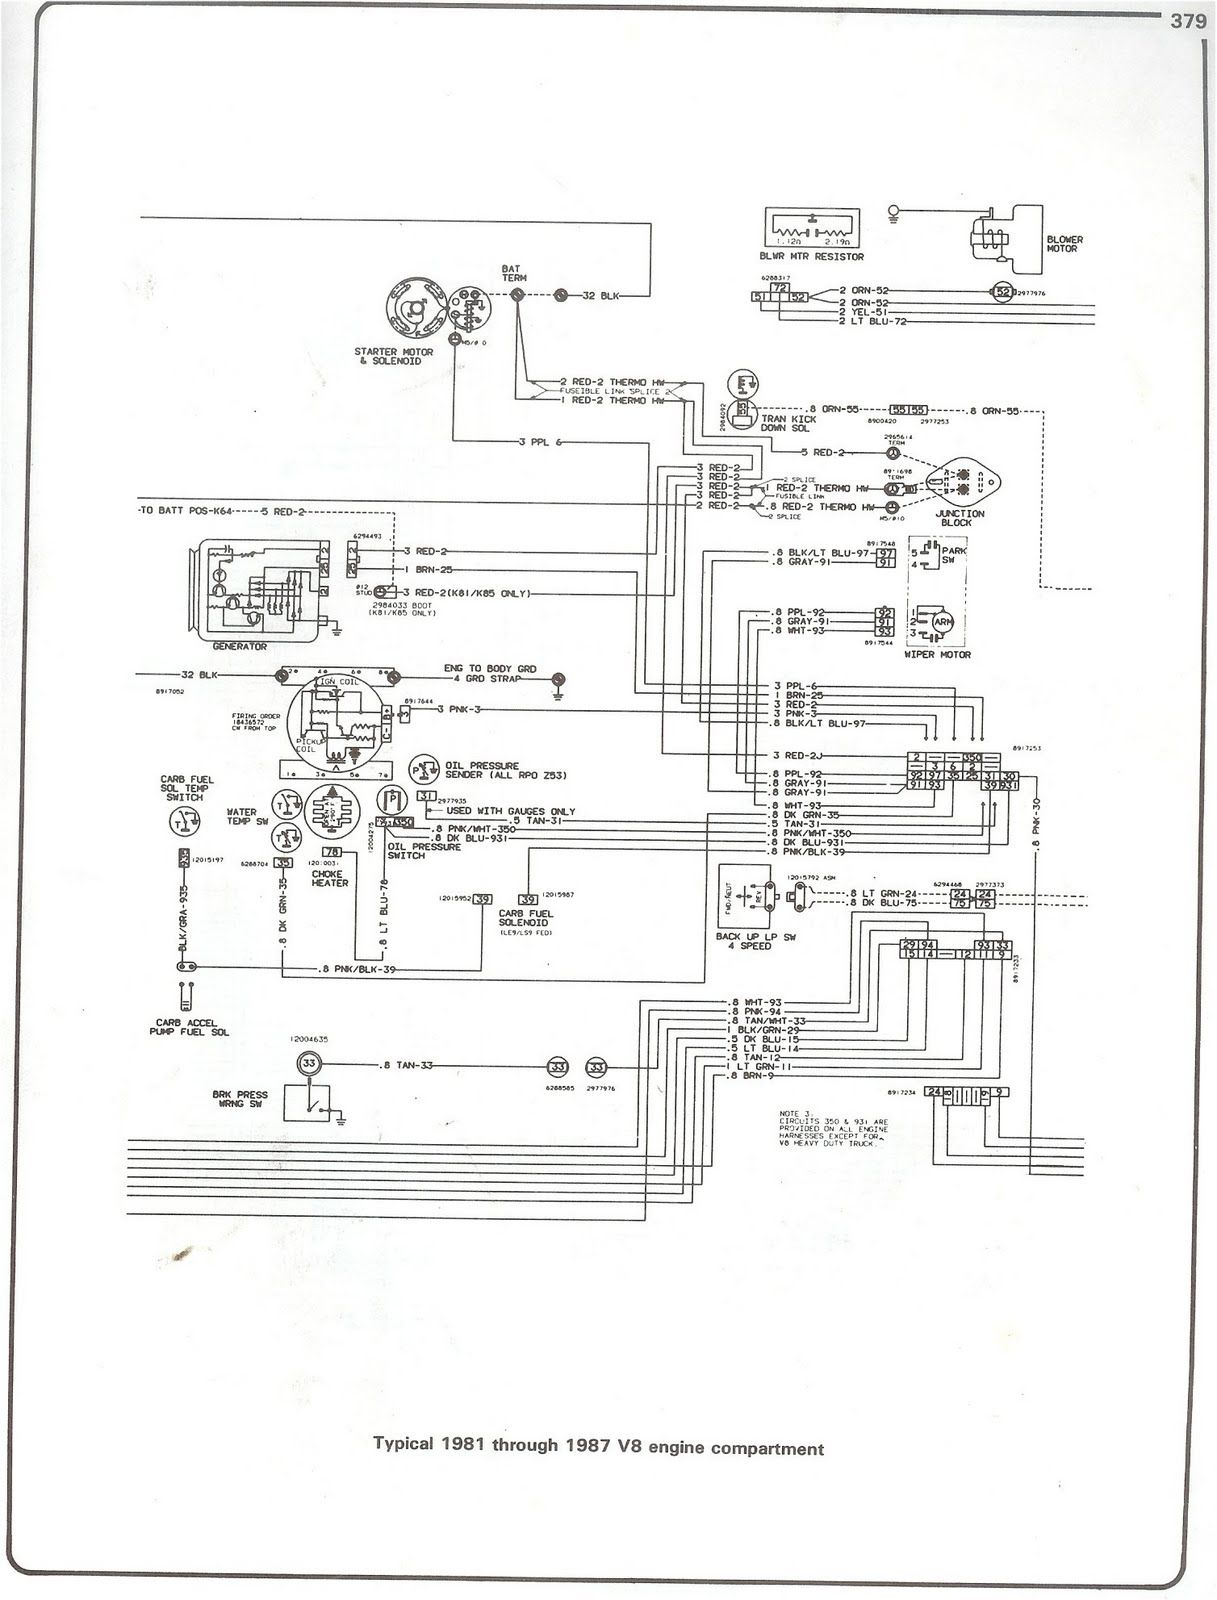 this is engine compartment wiring diagram for 1981 trough 1987 chevrolet v8 truck description from autowiringdiagram blogspot com  [ 1217 x 1600 Pixel ]